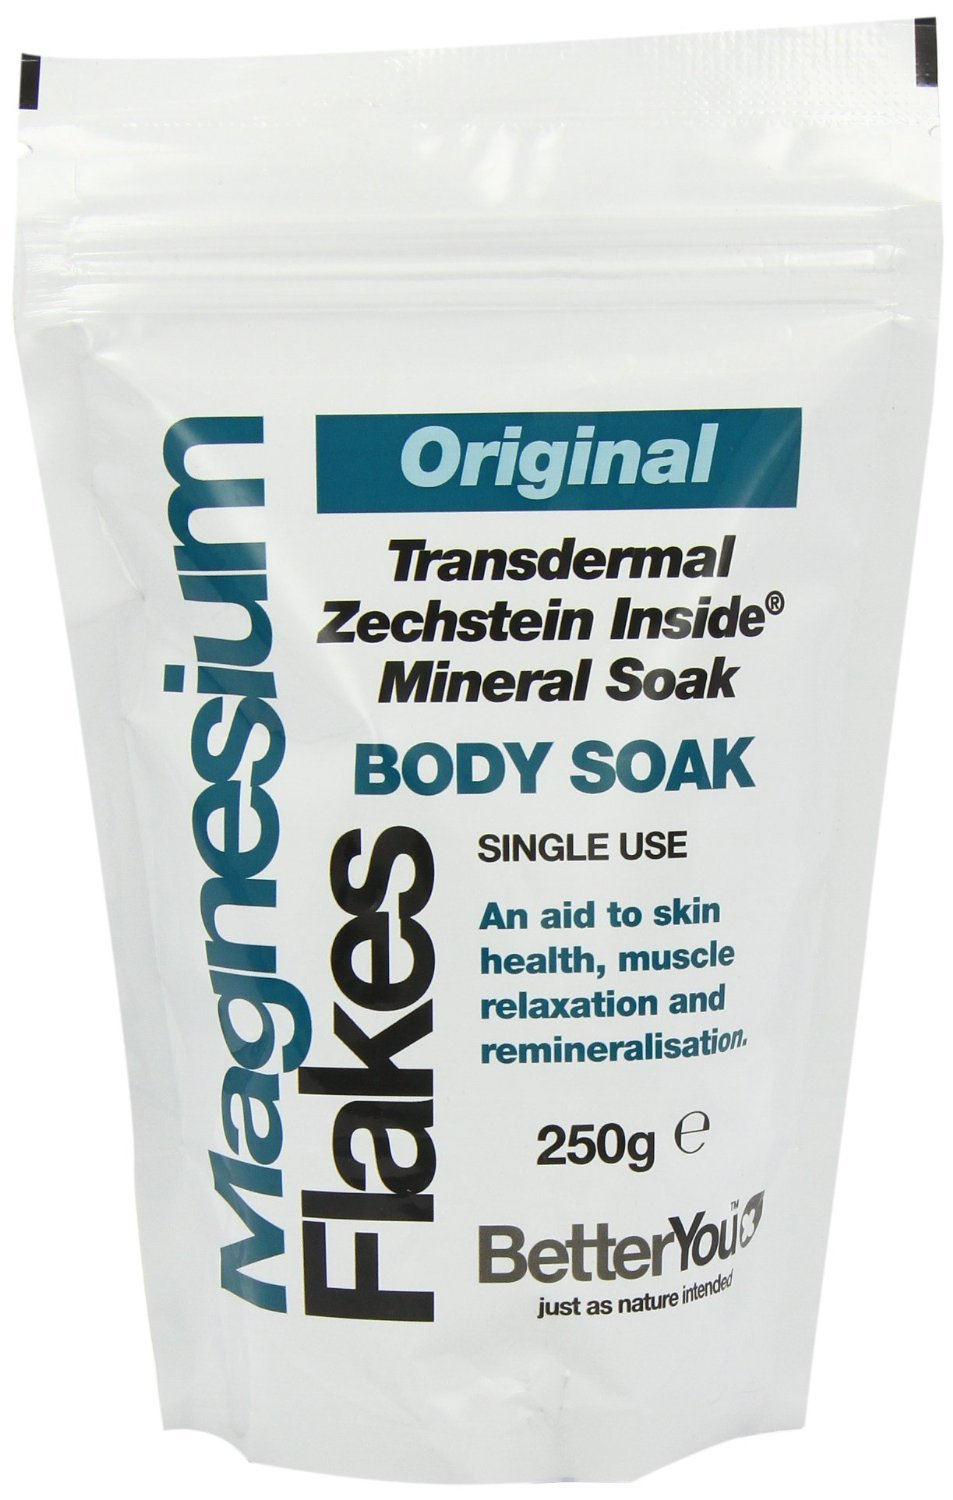 (6 PACK) - BetterYou - Magnesium Flakes Body Soak | 250g | 6 PACK BUNDLE